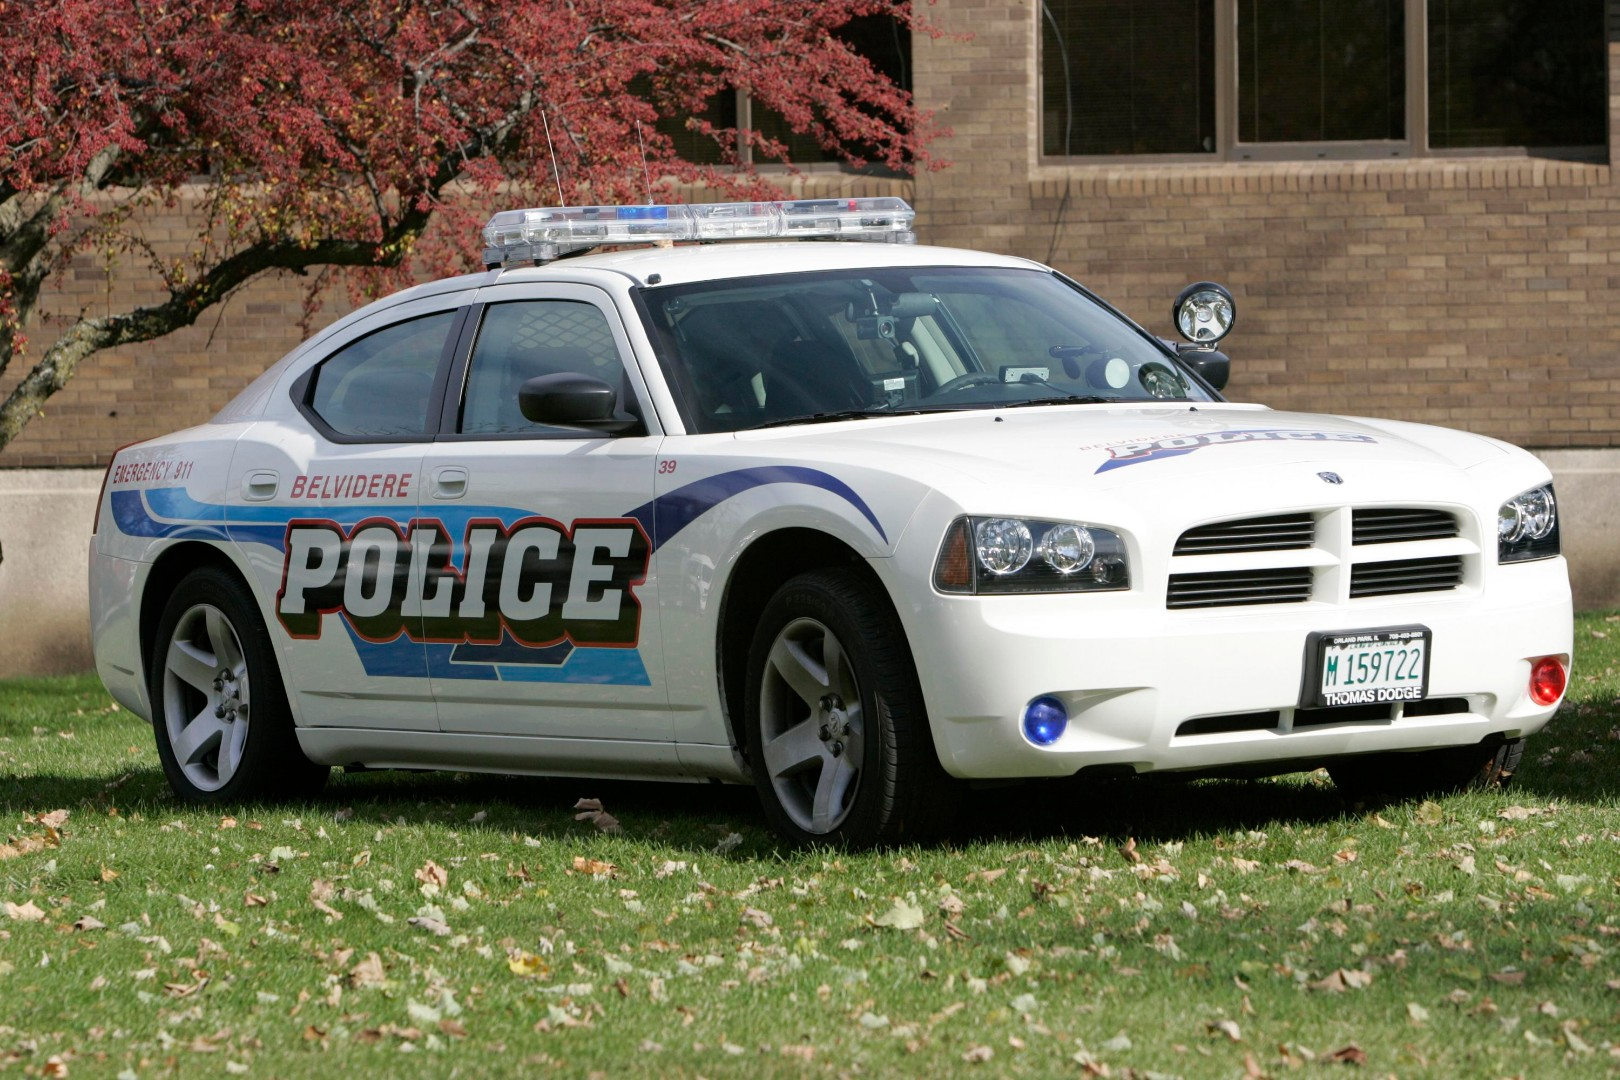 2006 dodge charger police cruiser.jpg